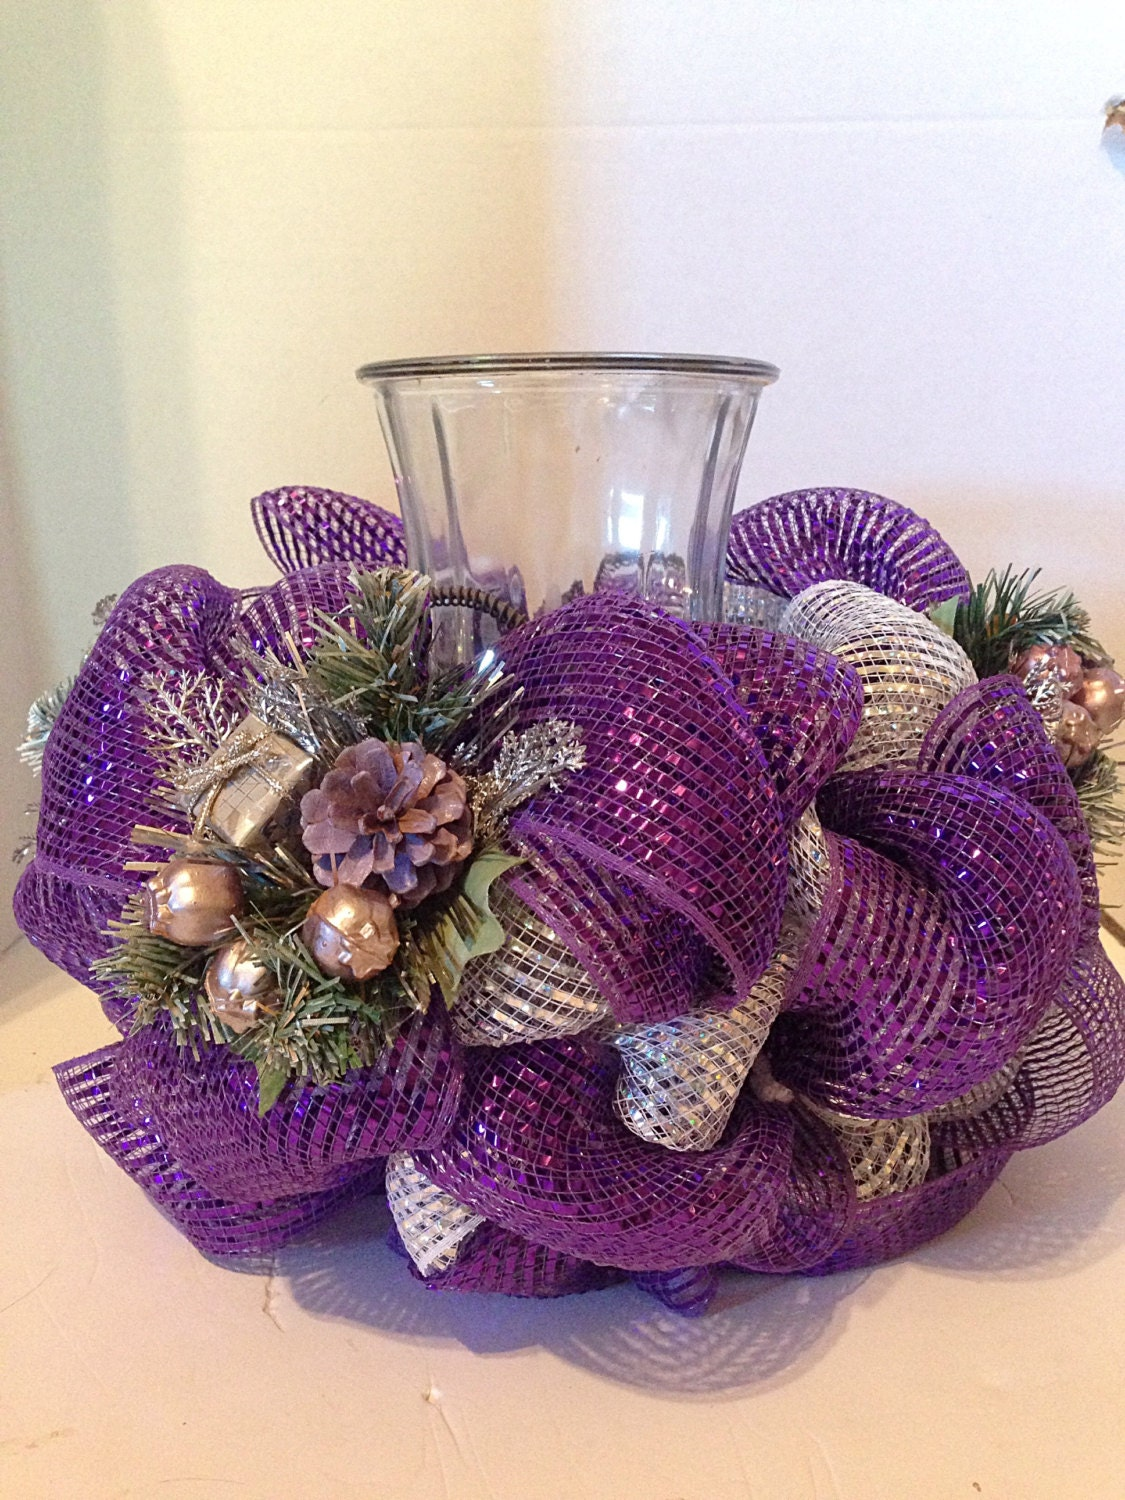 #9B6430 Christmas Centerpiece Deco Mesh Centerpiece Purple 5271 decoration table noel mauve 1125x1500 px @ aertt.com